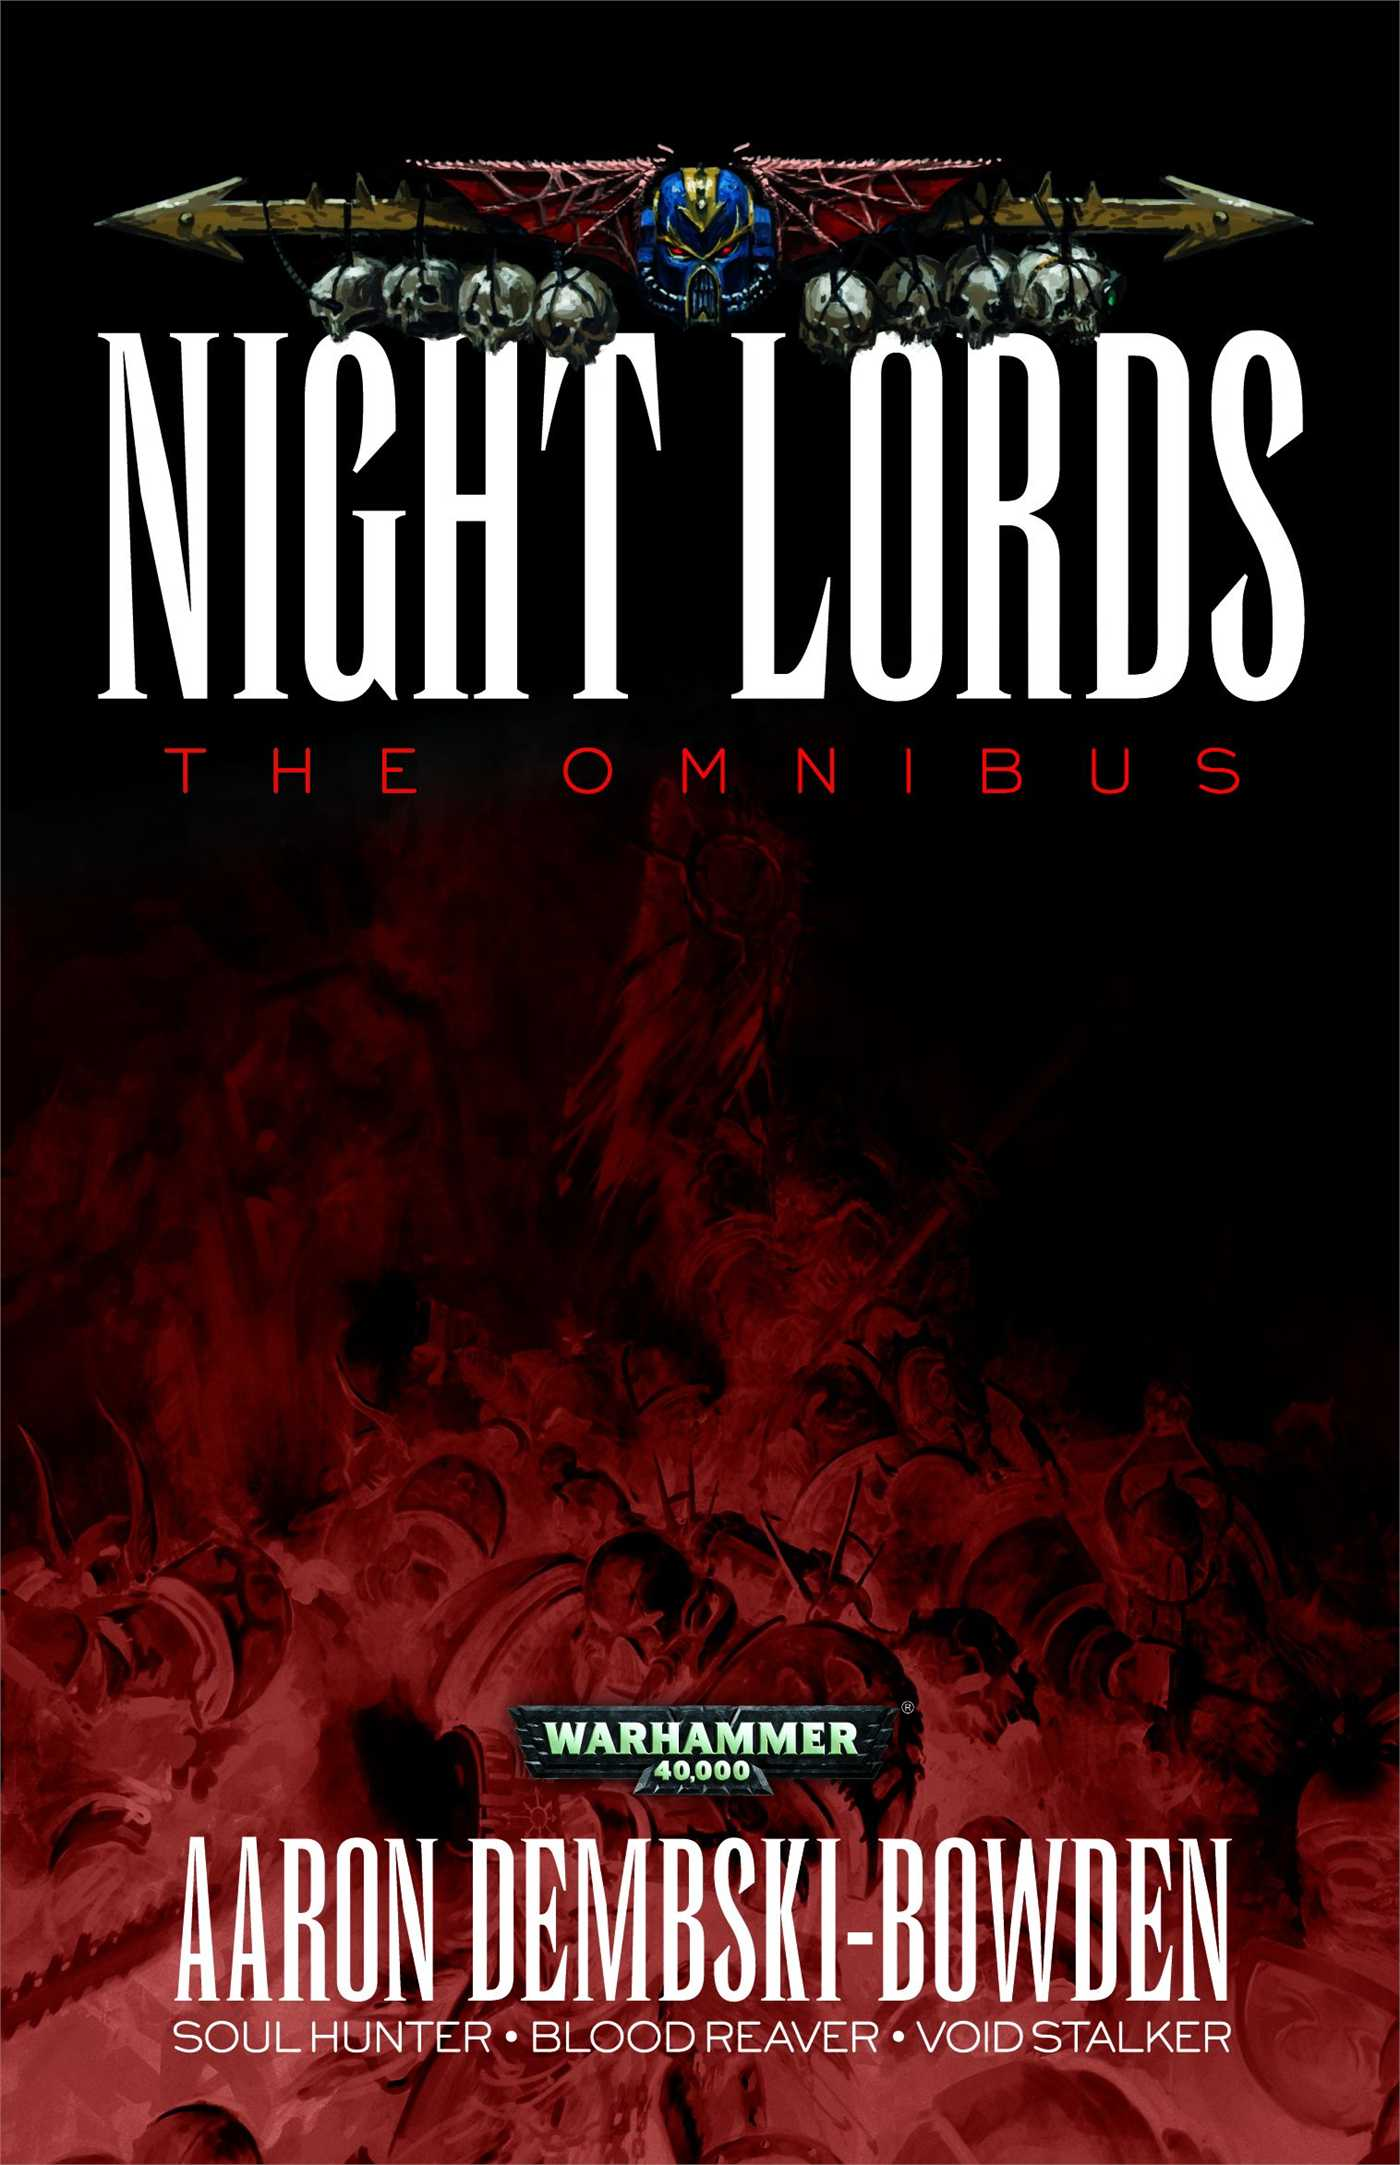 Night-lords-9781849706766_hr